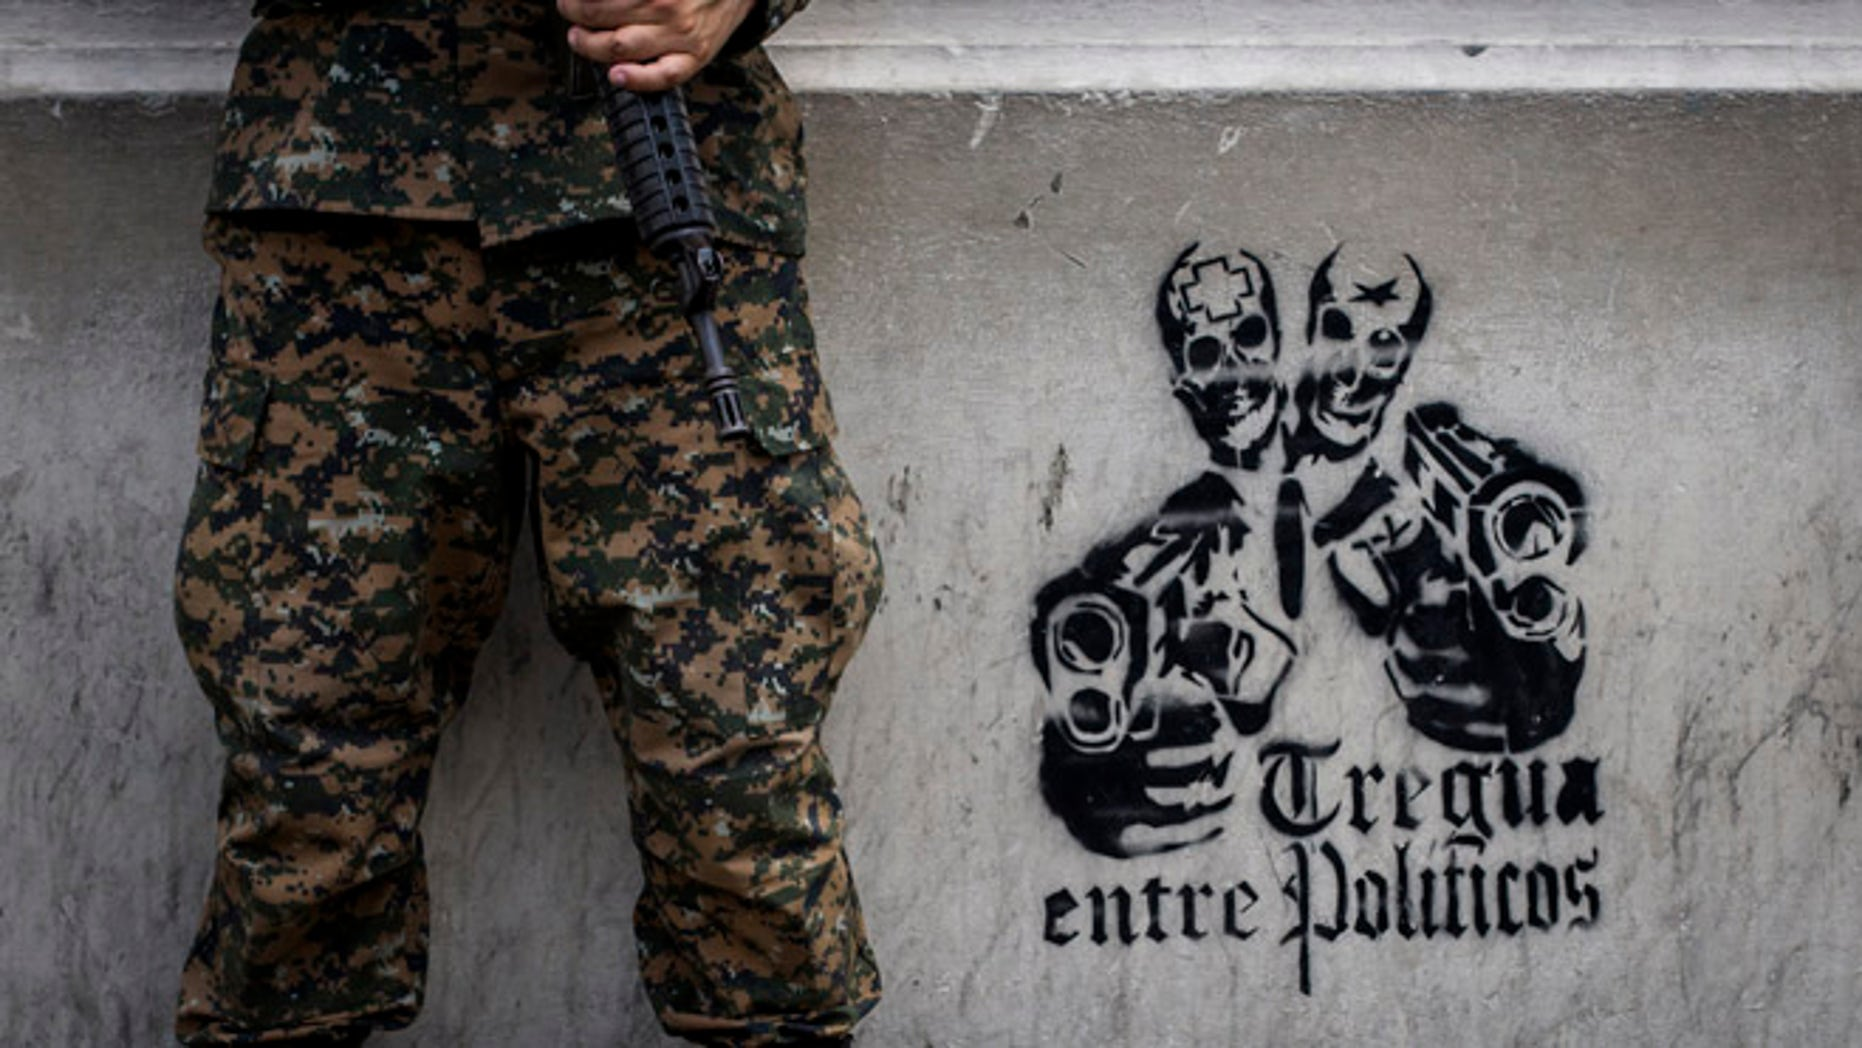 """In this June 14, 2016 photo, a soldier stands next to a stenciled graffiti that reads in Spanish """"Truce between politicians"""" painted on the main walls of the National Palace in San Salvador, El Salvador. After becoming the world's murder capital last year and posting an equally bloody start to 2016, El Salvador has seen its monthly homicide rates fall by about half. The government attributes the drop to a tough military crackdown on the country's powerful gangs, while the gangs themselves claim credit for a nonaggression pact between the three biggest criminal groups. (AP Photo/Salvador Melendez)"""